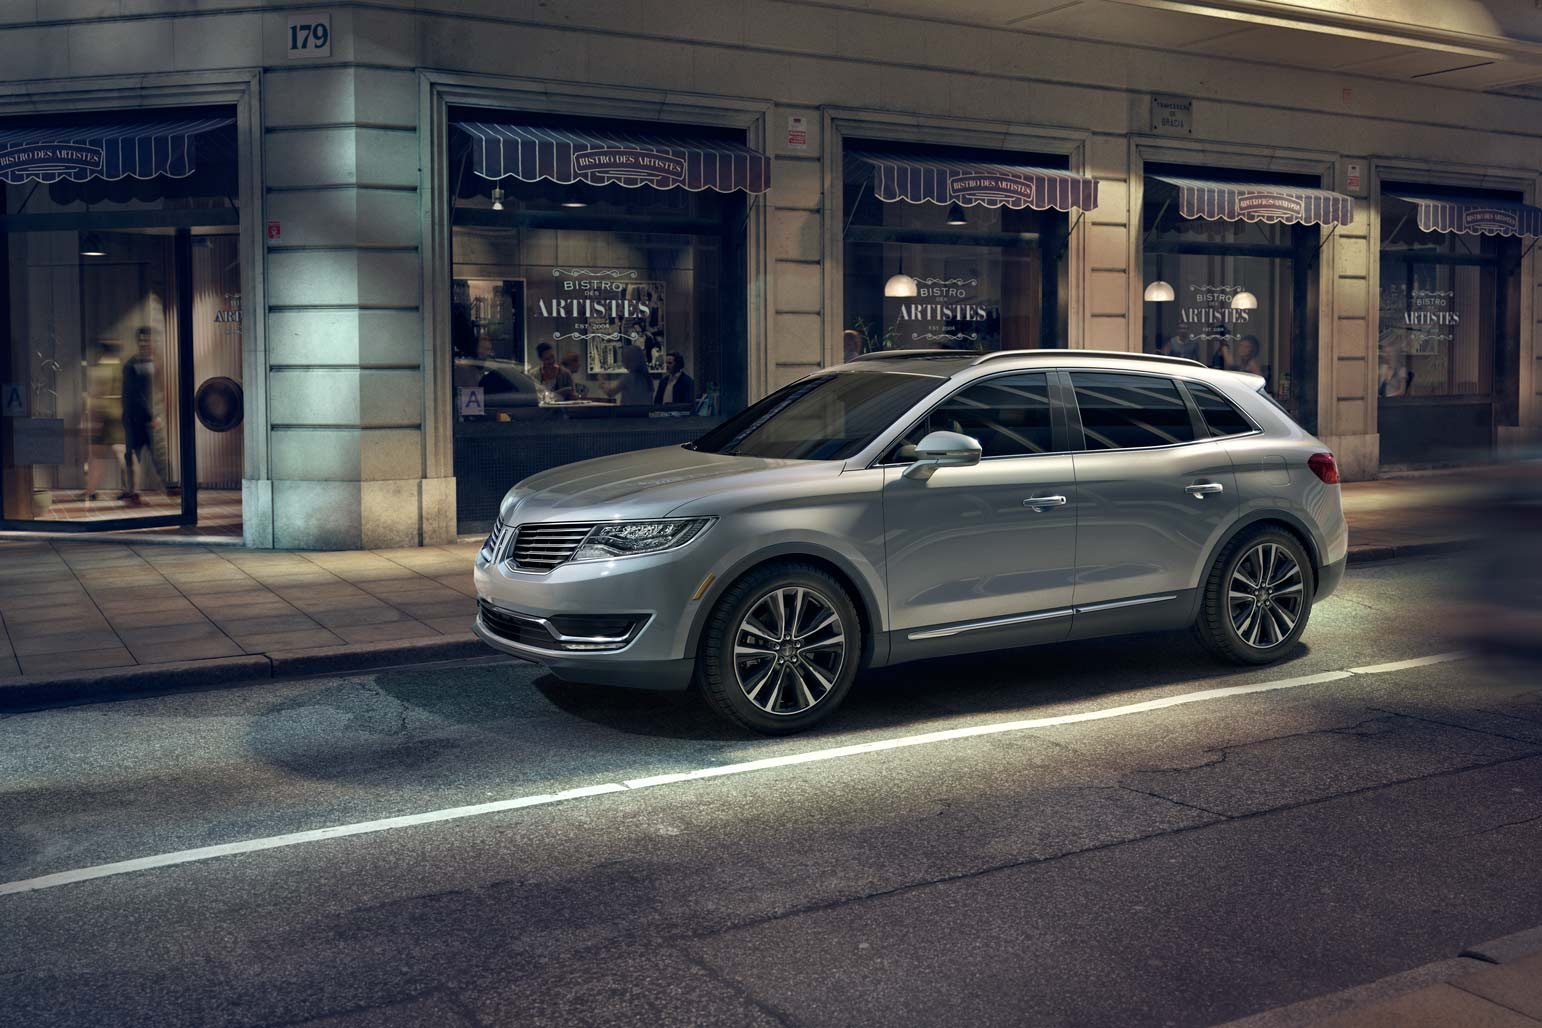 New Lincoln MKX Exterior image 1